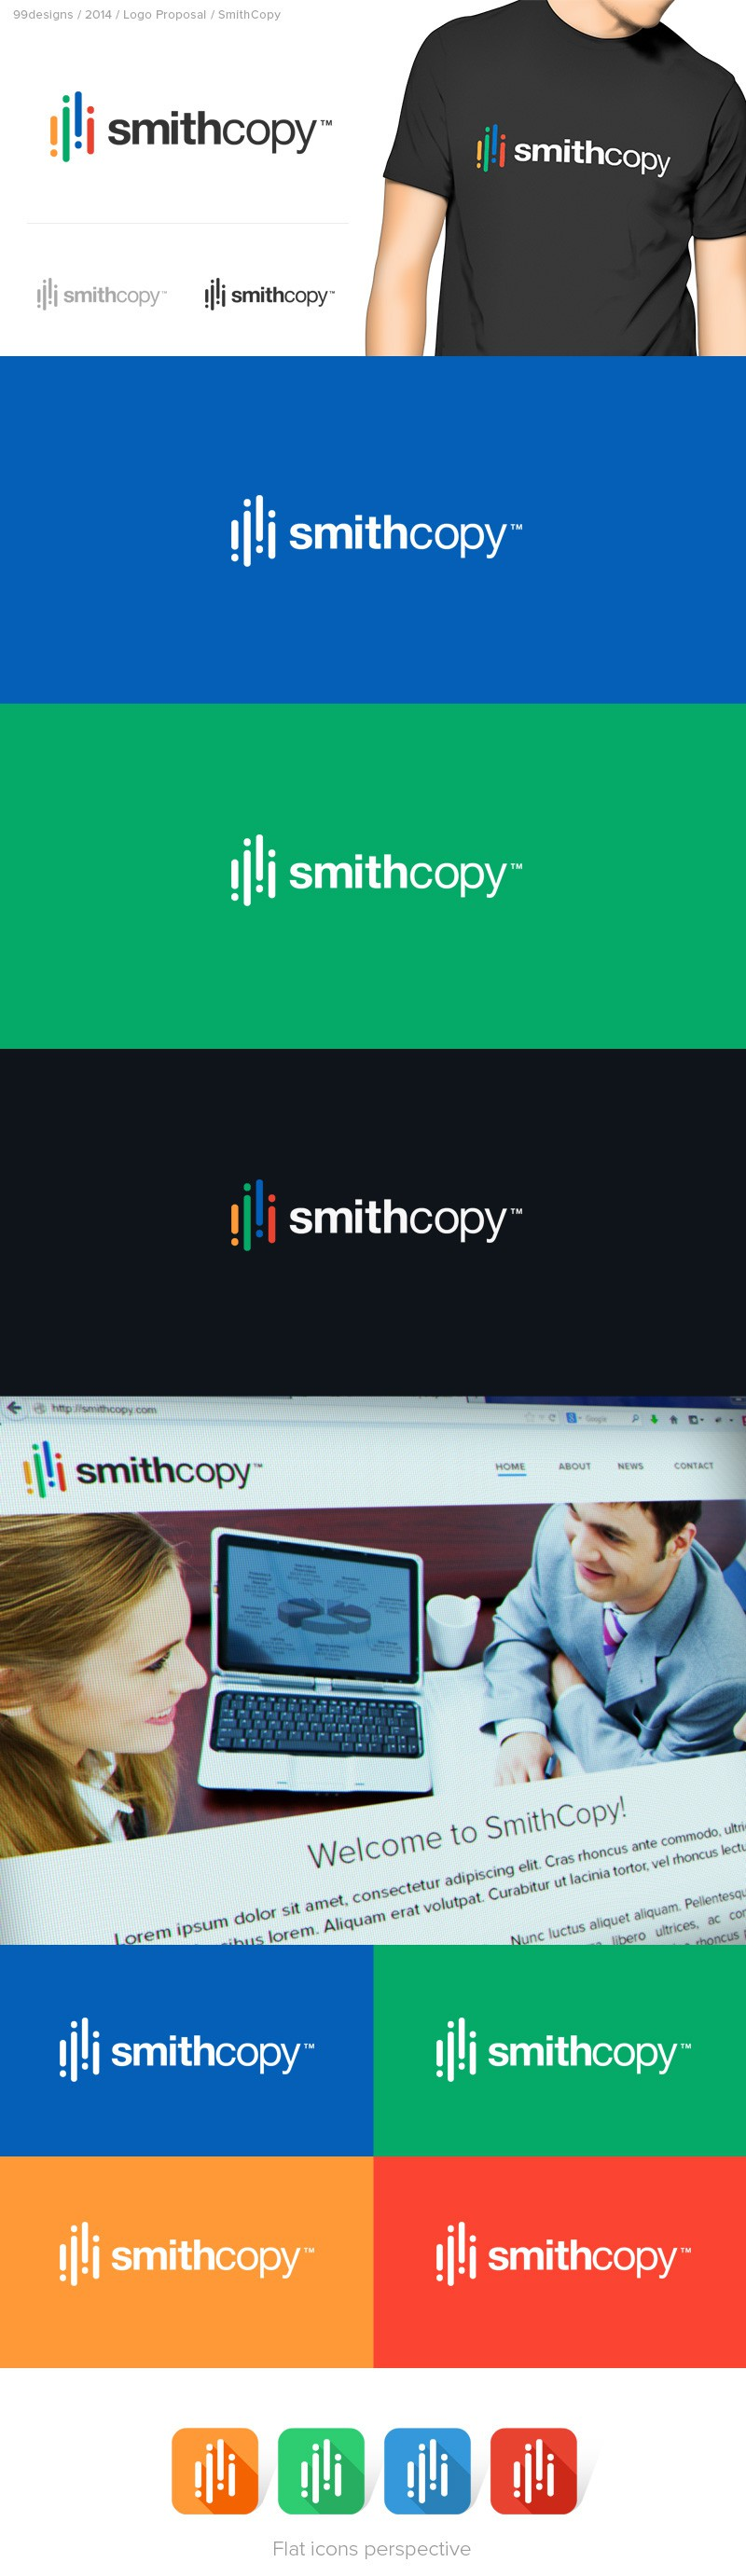 Need a Modern & Clean Logo for New Online Advertising & Copywriting Firm